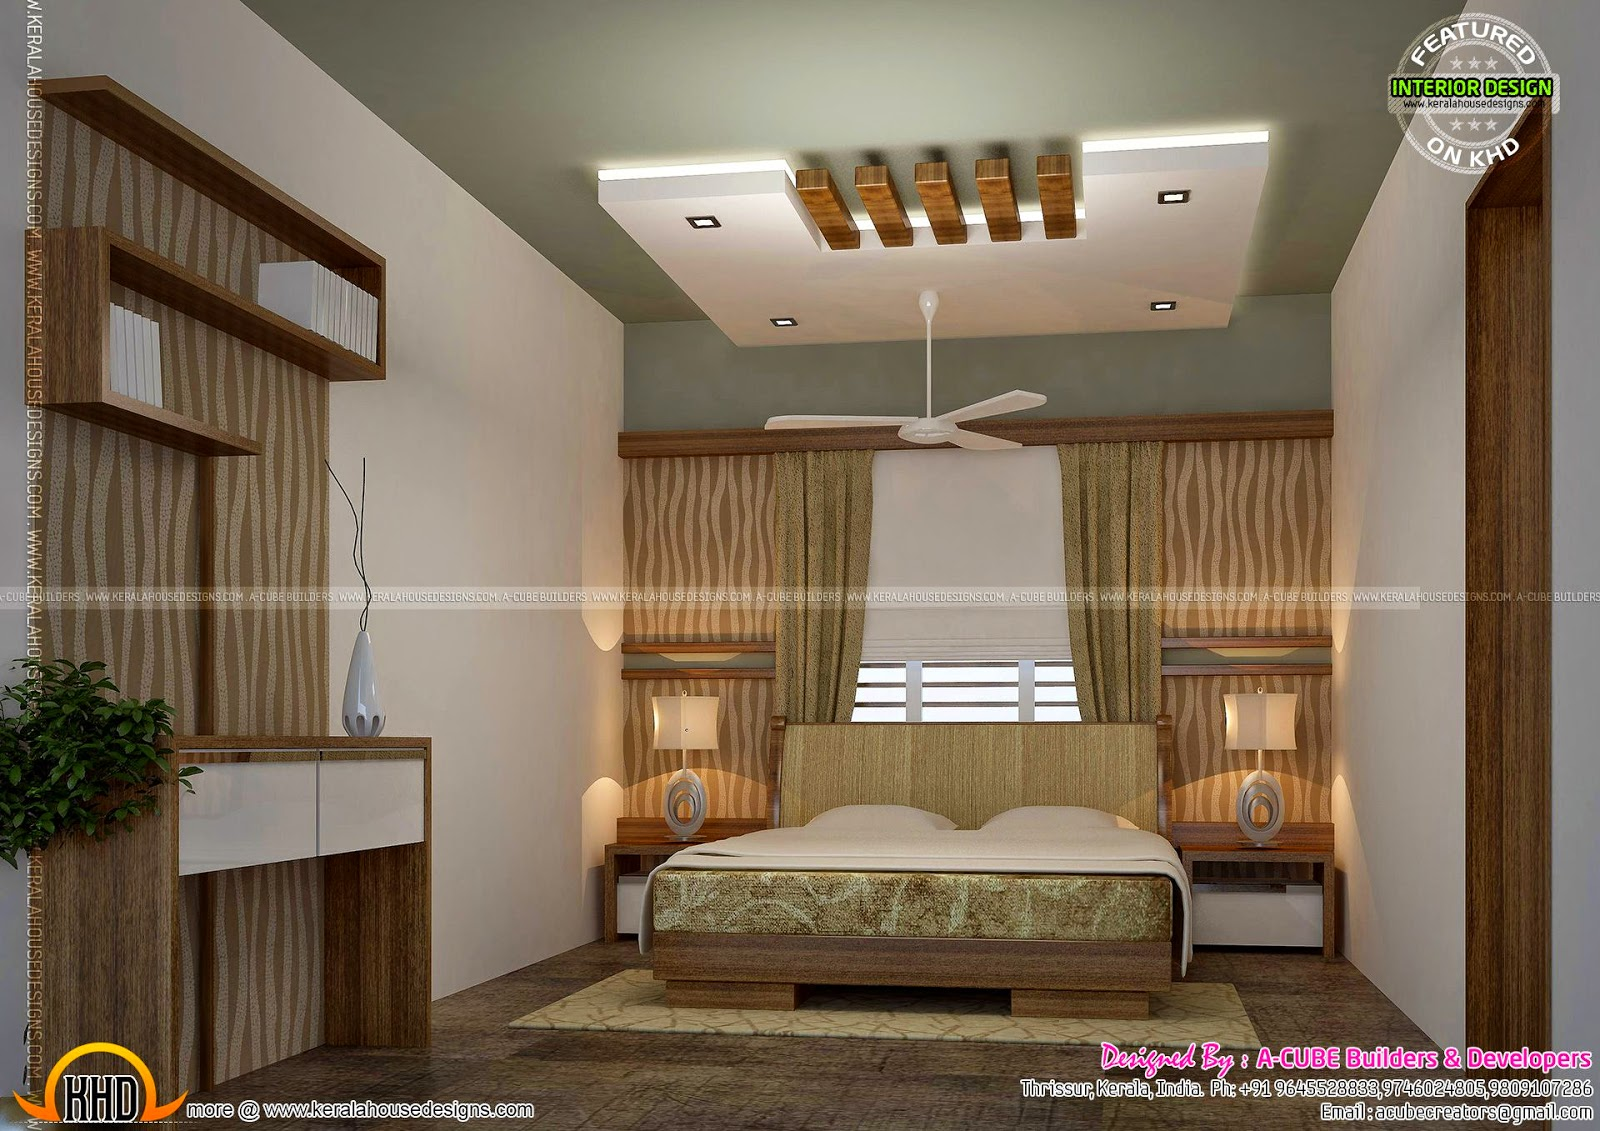 2 Bedroom House Interior Designs In India